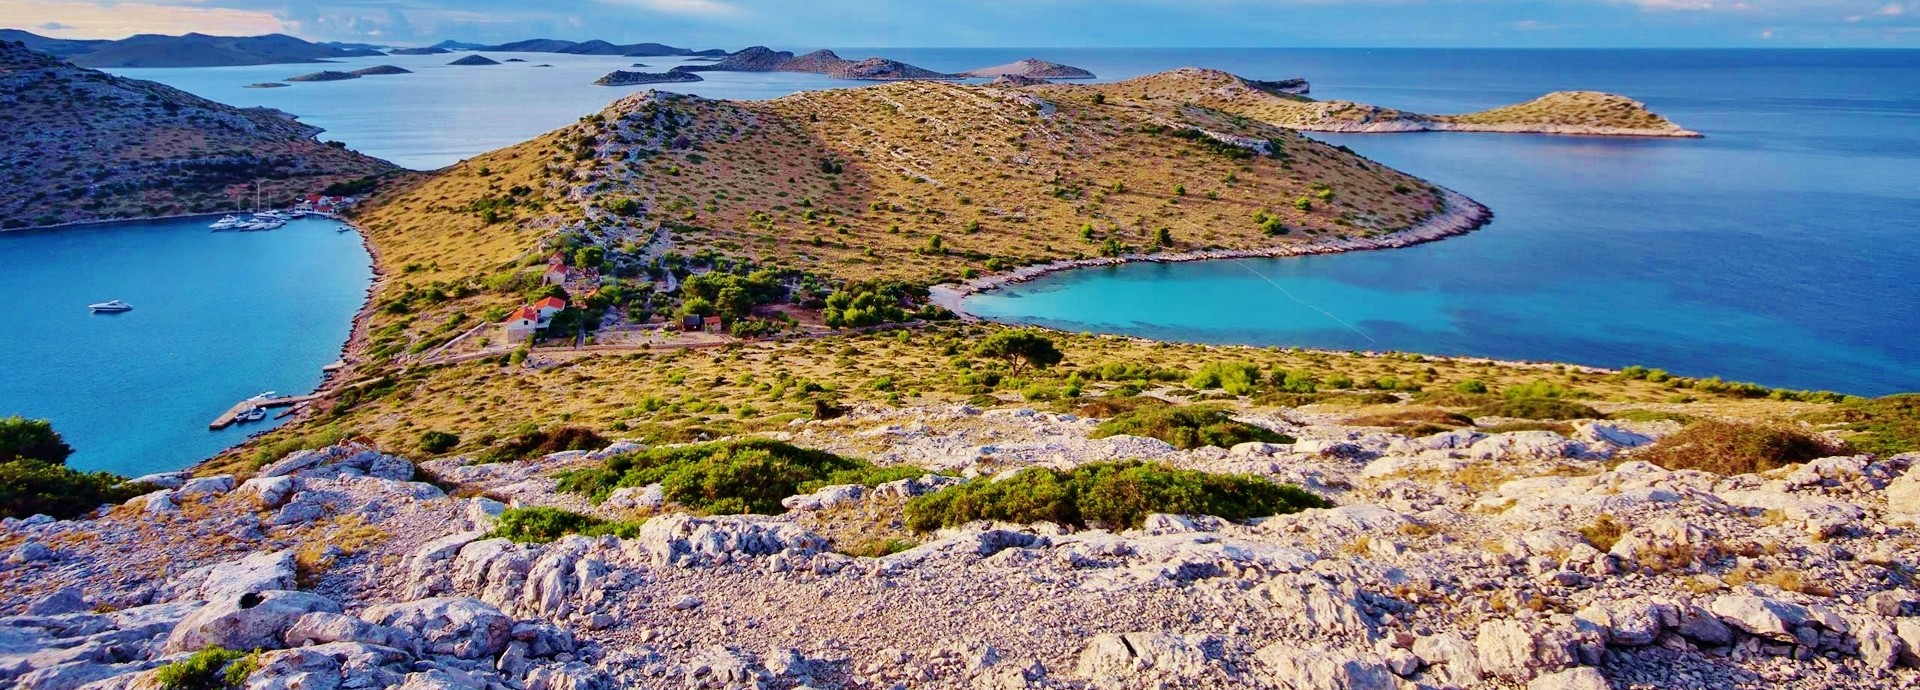 View of the Kornati Islands from the top of the hill